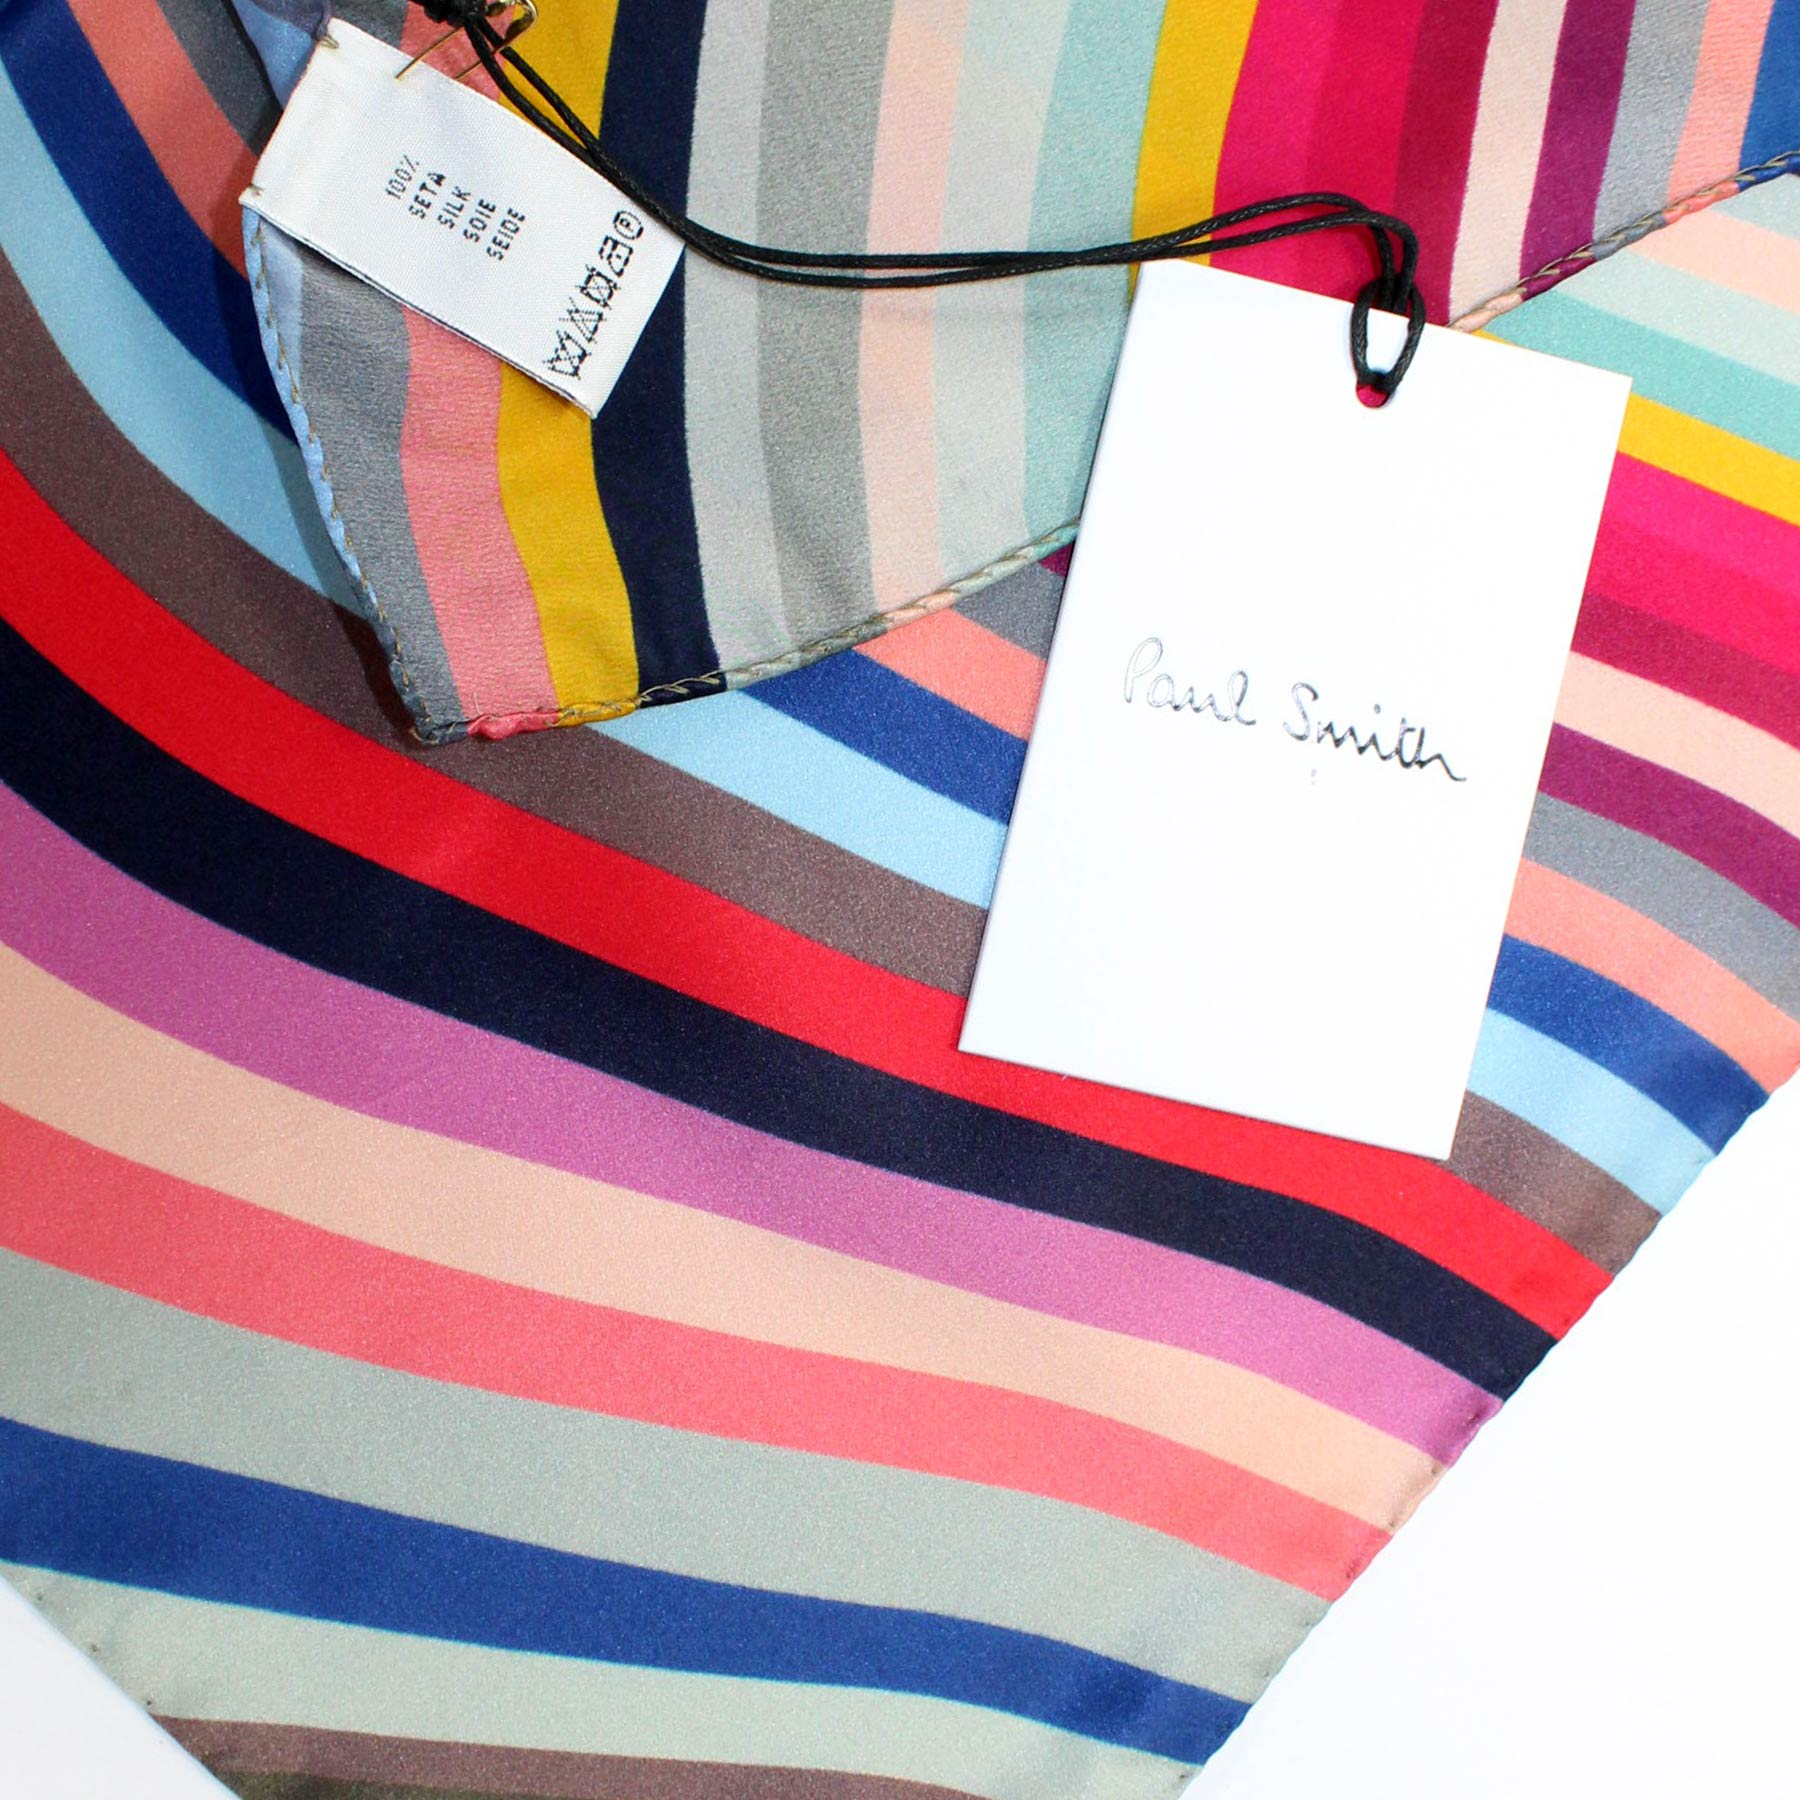 Paul Smith Scarf Signature Swirly Stripes - Women Collection Silk Shawl New